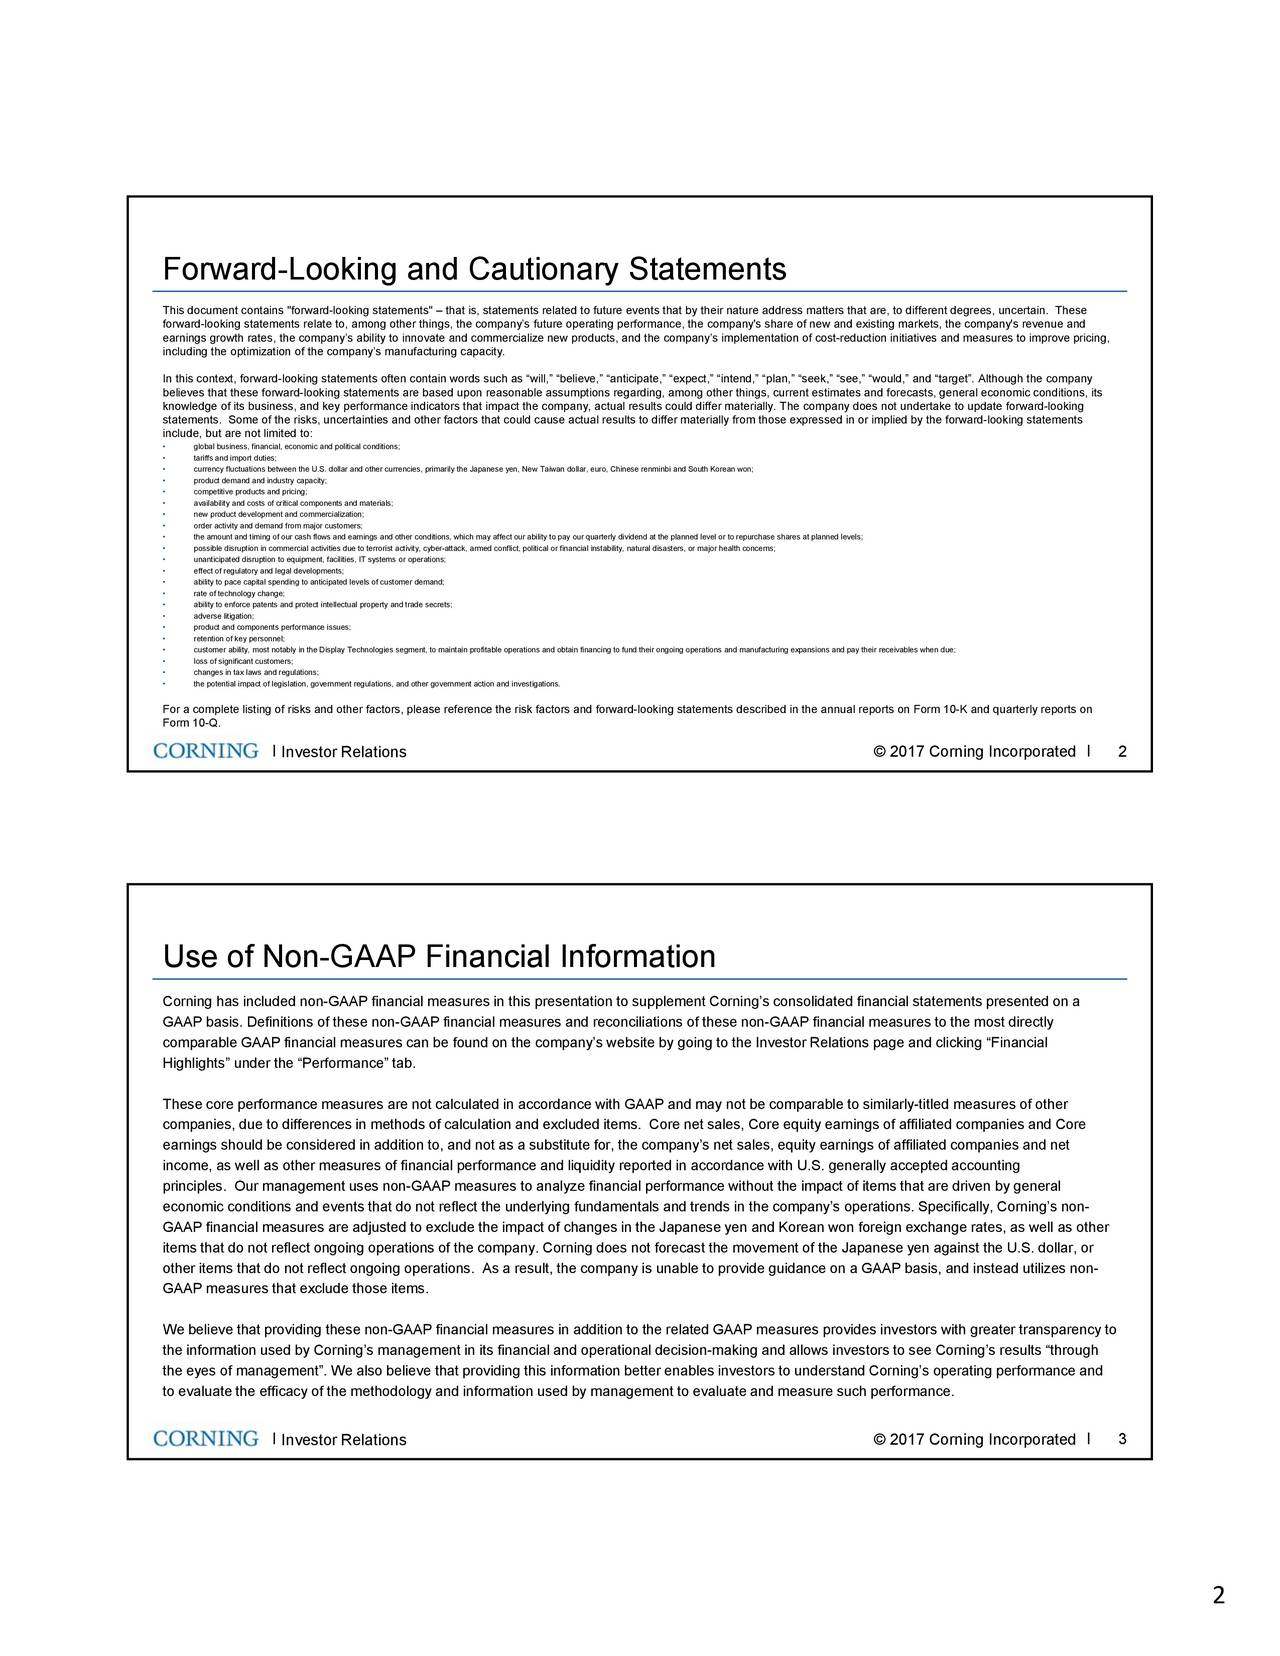 "This document contains ""forward-looking statements""  that is, statements related to future events that by their nature address matters that are, to different degrees, uncertain. These forward-looking statements relate to, among other things, the companys future operating performance, the company's share of ne w and existing markets, the company's revenue and earnings growth rates, the companys ability to innovate and commercialize new products, and the companys implementation of cost-reduction initiatives and measures to improve pricing, including the optimization of the companys manufacturing capacity. In this context, forward-looking statements often contain words such as will, believe, anticipate, expect, intend, plan, seek, see, would, and target. Although the company believes that these forward-looking statements are based upon reasonable assumptions regarding, among other things, current est imates and forecasts, general economic conditions, its knowledge of its business, and key performance indicators that impact the company, actual results could differ materially. The company does not undertake to update forward-looking statements. Some of the risks, uncertainties and other factors that could cause actual results to differ materially from those e xpressed in or implied by the forward-looking statements include, but are not limited to: global business, financial, economic and political conditions; tariffs and import duties; currency fluctuations between the U.S. dollar and other currencies, primarily the Japanese yen, New Taiwan dollar, euro, Chinese renminbi and South Korean won; product demand and industry capacity; competitive products and pricing; availability and costs of critical components and materials; new product development and commercialization; order activity and demand from major customers; the amount and timing of our cash flows and earnings and other conditions, which may affect our ability to pay our quarterly dividend at the planned level or to repurchase shares at planned levels; possible disruption in commercial activities due to terrorist activity, cyber-attack, armed conflict, political or financial instability, natural disasters, or major health concerns; unanticipated disruption to equipment, facilities, IT systems or operations; effect of regulatory and legal developments; ability to pace capital spending to anticipated levels of customer demand; rate of technology change; ability to enforce patents and protect intellectual property and trade secrets; adverse litigation; product and components performance issues; retention of key personnel; customer ability, most notably in the Display Technologies segment, to maintain profitable operations and obtain financing to fund their ongoing operations and manufacturing expansions and pay their receivables when due; loss of significant customers; changes in tax laws and regulations; the potential impact of legislation, government regulations, and other government action and investigations. For a complete listing of risks and other factors, please reference the risk factors and forward-looking statements described i n the annual reports on Form 10-K and quarterly reports on Form 10-Q. . Investor Relations  2017 Corning Incorporated 2 . . Use of Non-GAAP Financial Information Corning has included non-GAAP financial measures in this presentation to supplementCornings consolidated financial statementspresented on a GAAP basis. Definitions of these non-GAAPfinancial measures and reconciliations of these non-GAAP financial measures to the most directly comparable GAAP financial measurescan be found on the companys website by going to the Investor Relations page and clicking Financial Highlights under the Performance tab. These core performance measuresare not calculated in accordance with GAAP andmay not be comparable to similarly-titled measures of other companies, due to differences in methods of calculation and excu l ded items. Core net sales, Core equity earnings of affiliated companies and Core earnings should be considered in addition to, andnot as a substitute for, the companys net sales, equity earnings of affiliae t d companies and net income, as well as other measures of financial performance and liquidity reported in accordance with U.S. generally accepted accounting principles. Our management uses non-GAAP measures to analyze financial performance without the impact of items that are driven by general economic conditions and events that do notreflect the underlying fundamentals and trendsin the companys operations. Specifically, Cornings non- GAAP financial measures are adjusted to exclude the impact ofchanges in the Japanese yen and Korean won foreign exchange rates, as well as other items that do not reflect ongoing operations of the company. Corning does not forecast the movement of the Japanese yen againstthe U.S. dollar, or other items that do not reflect ongoing operations. As a result, the company is unable to provide guidance on a GAAP basis, and instead utilizes non- GAAP measures that exclude those items. We believe that providing these non-GAAP financial measures inaddition to the related GAAP measures provides investors with greater transparency to the information used by Cornings management in its financial andoperational decision-making and allows investors to see Cornings results through the eyes of management. We also believe that providing thisinformation better enables investors to understand Cornings operating performance and to evaluate the efficacy of the methodology and informationused by management to evaluateand measure such performance. . Investor Relations  2017 Corning Incorporated 3 . . 2"